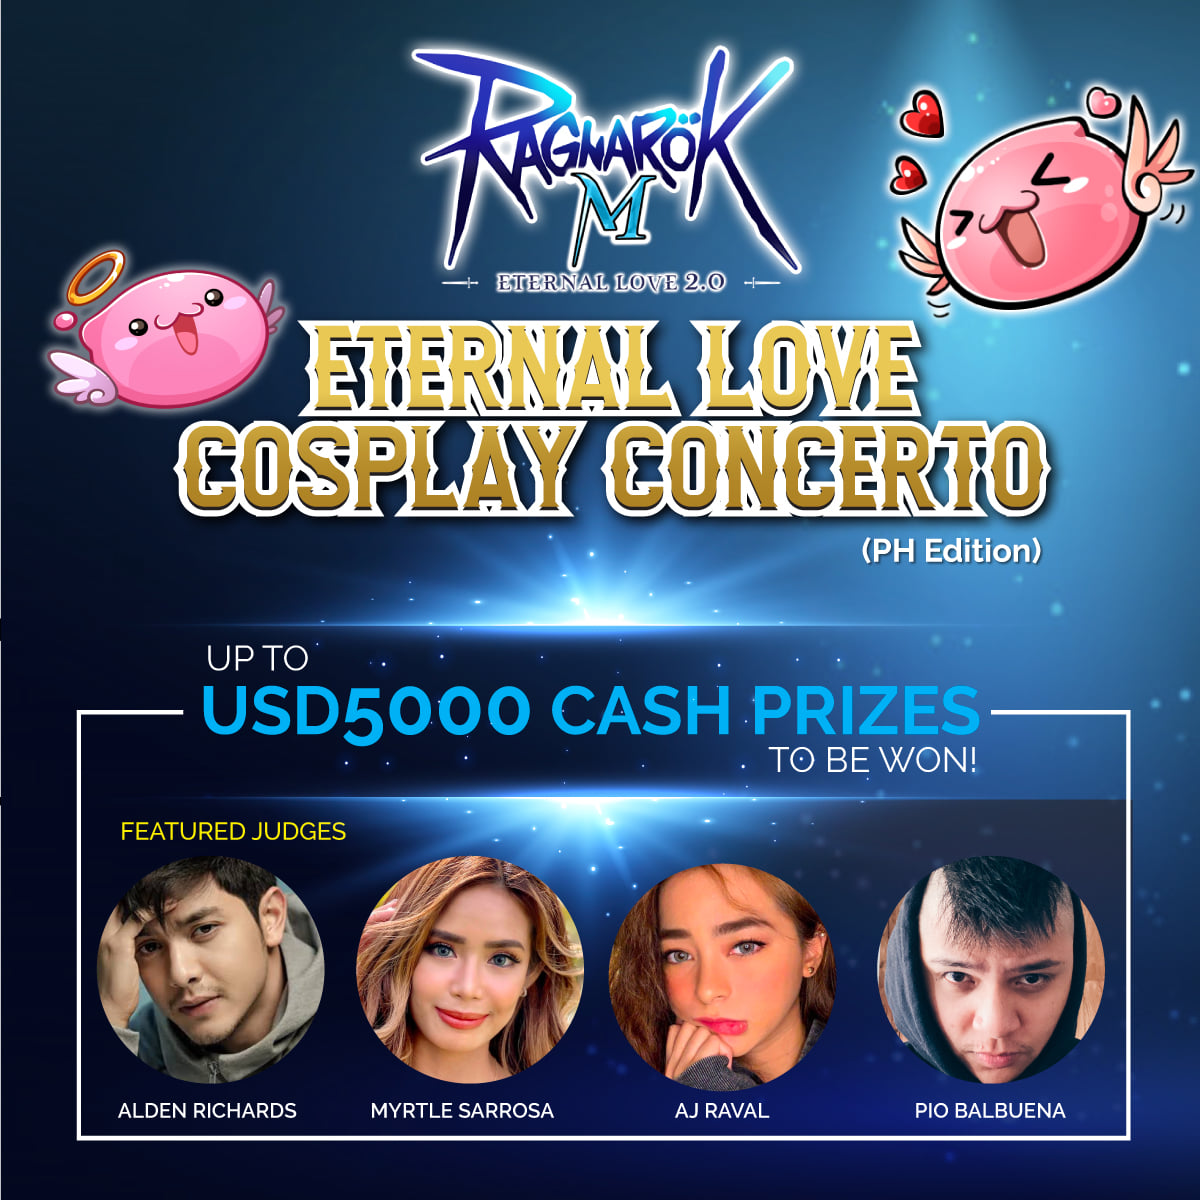 Ragnarok M: Eternal Love Cosplay Concerto